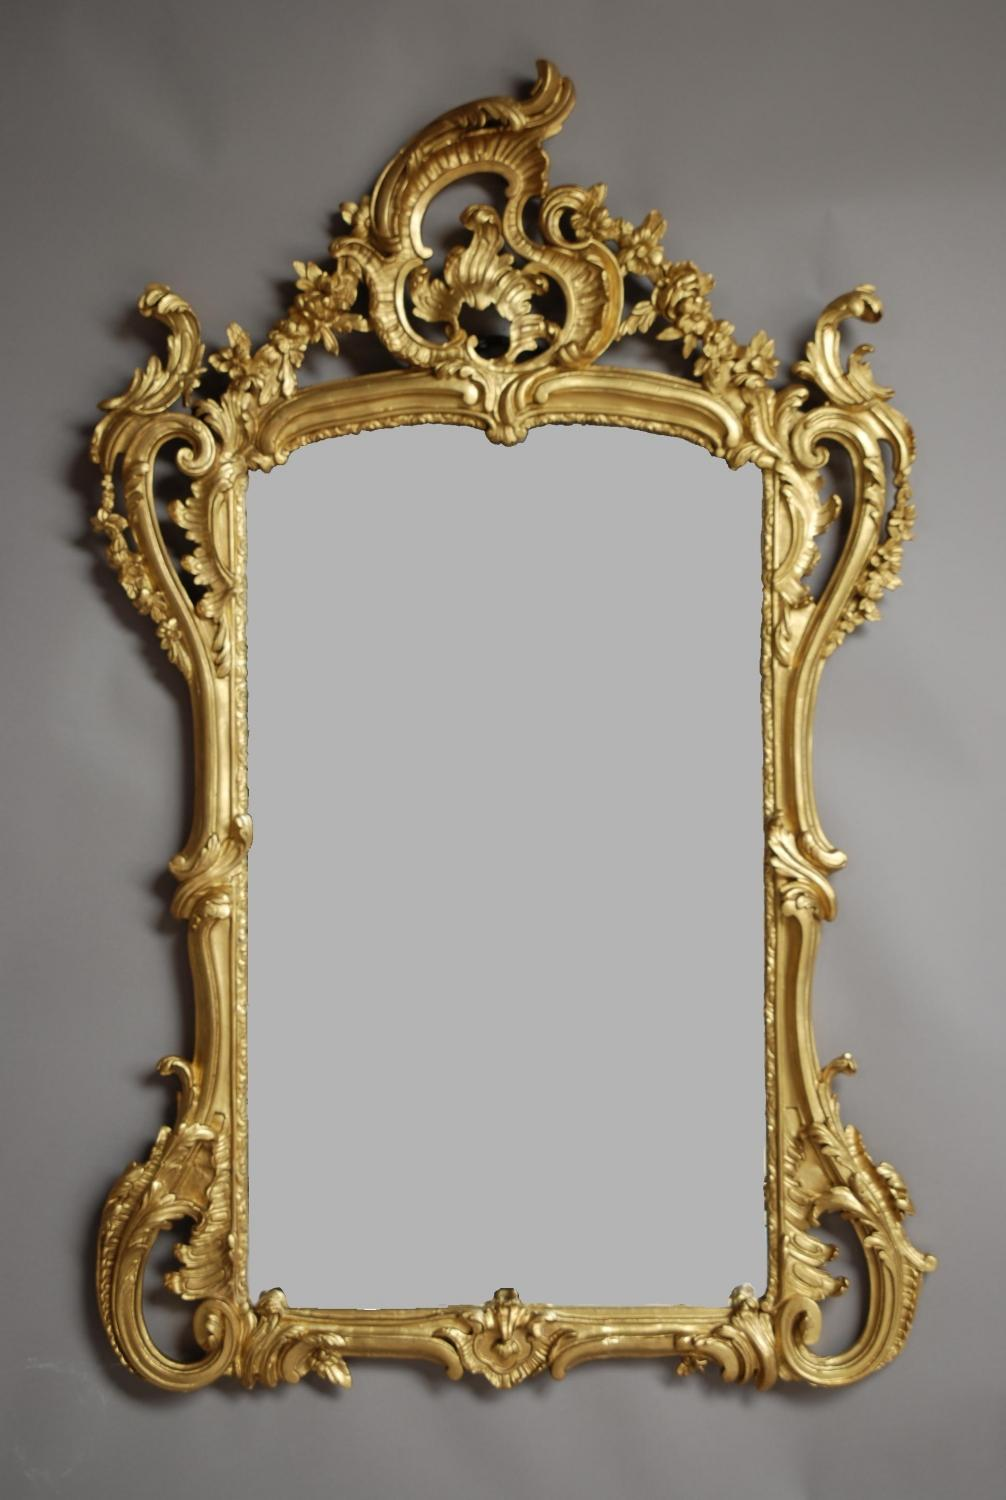 19th century French mirror in Rococo manner